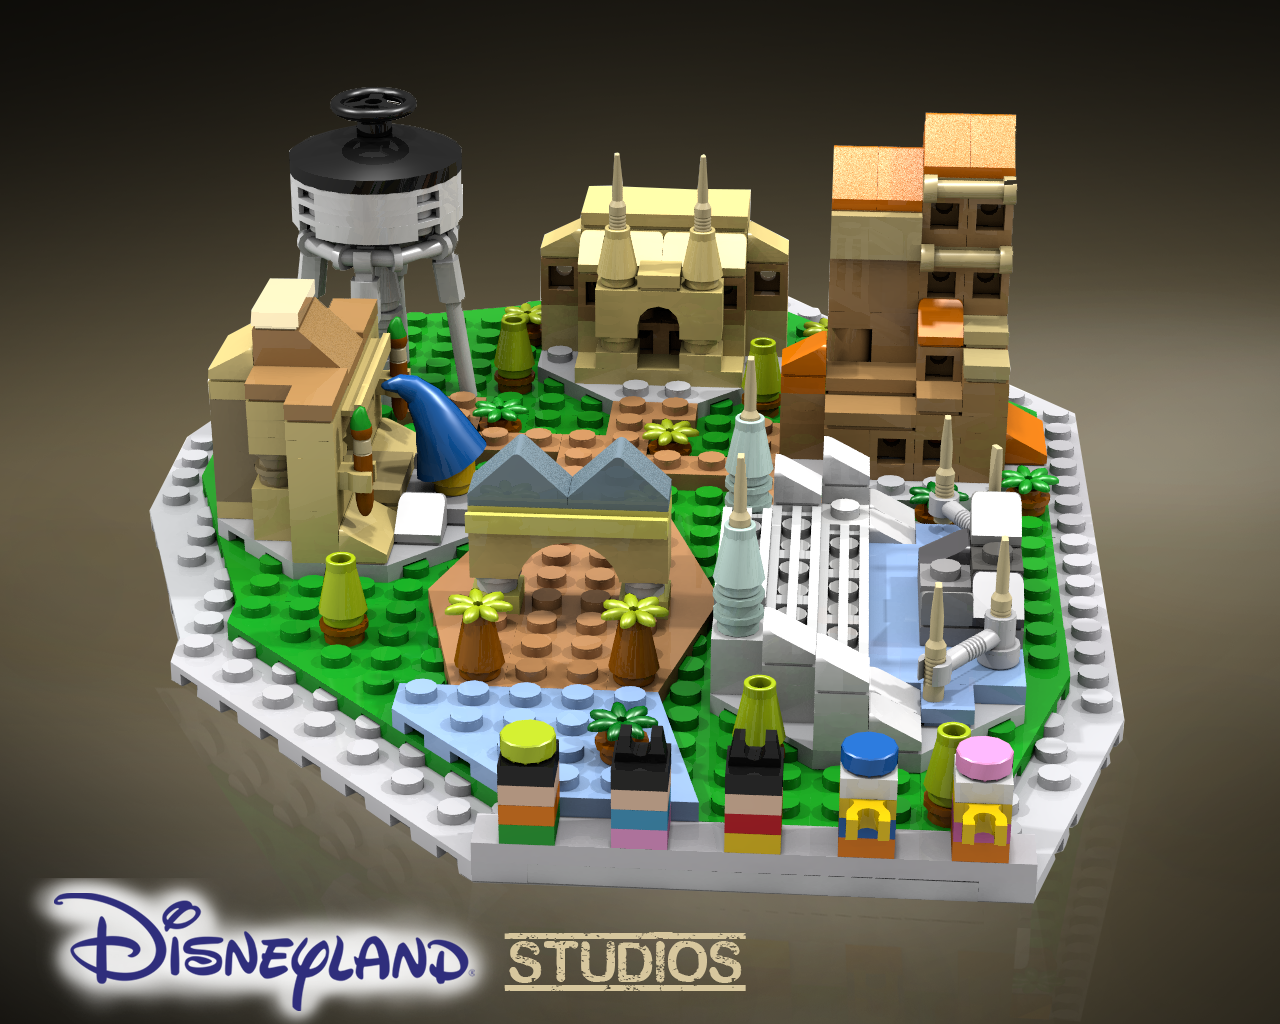 LEGO Ideas Disneyland Microscale The Family Brick